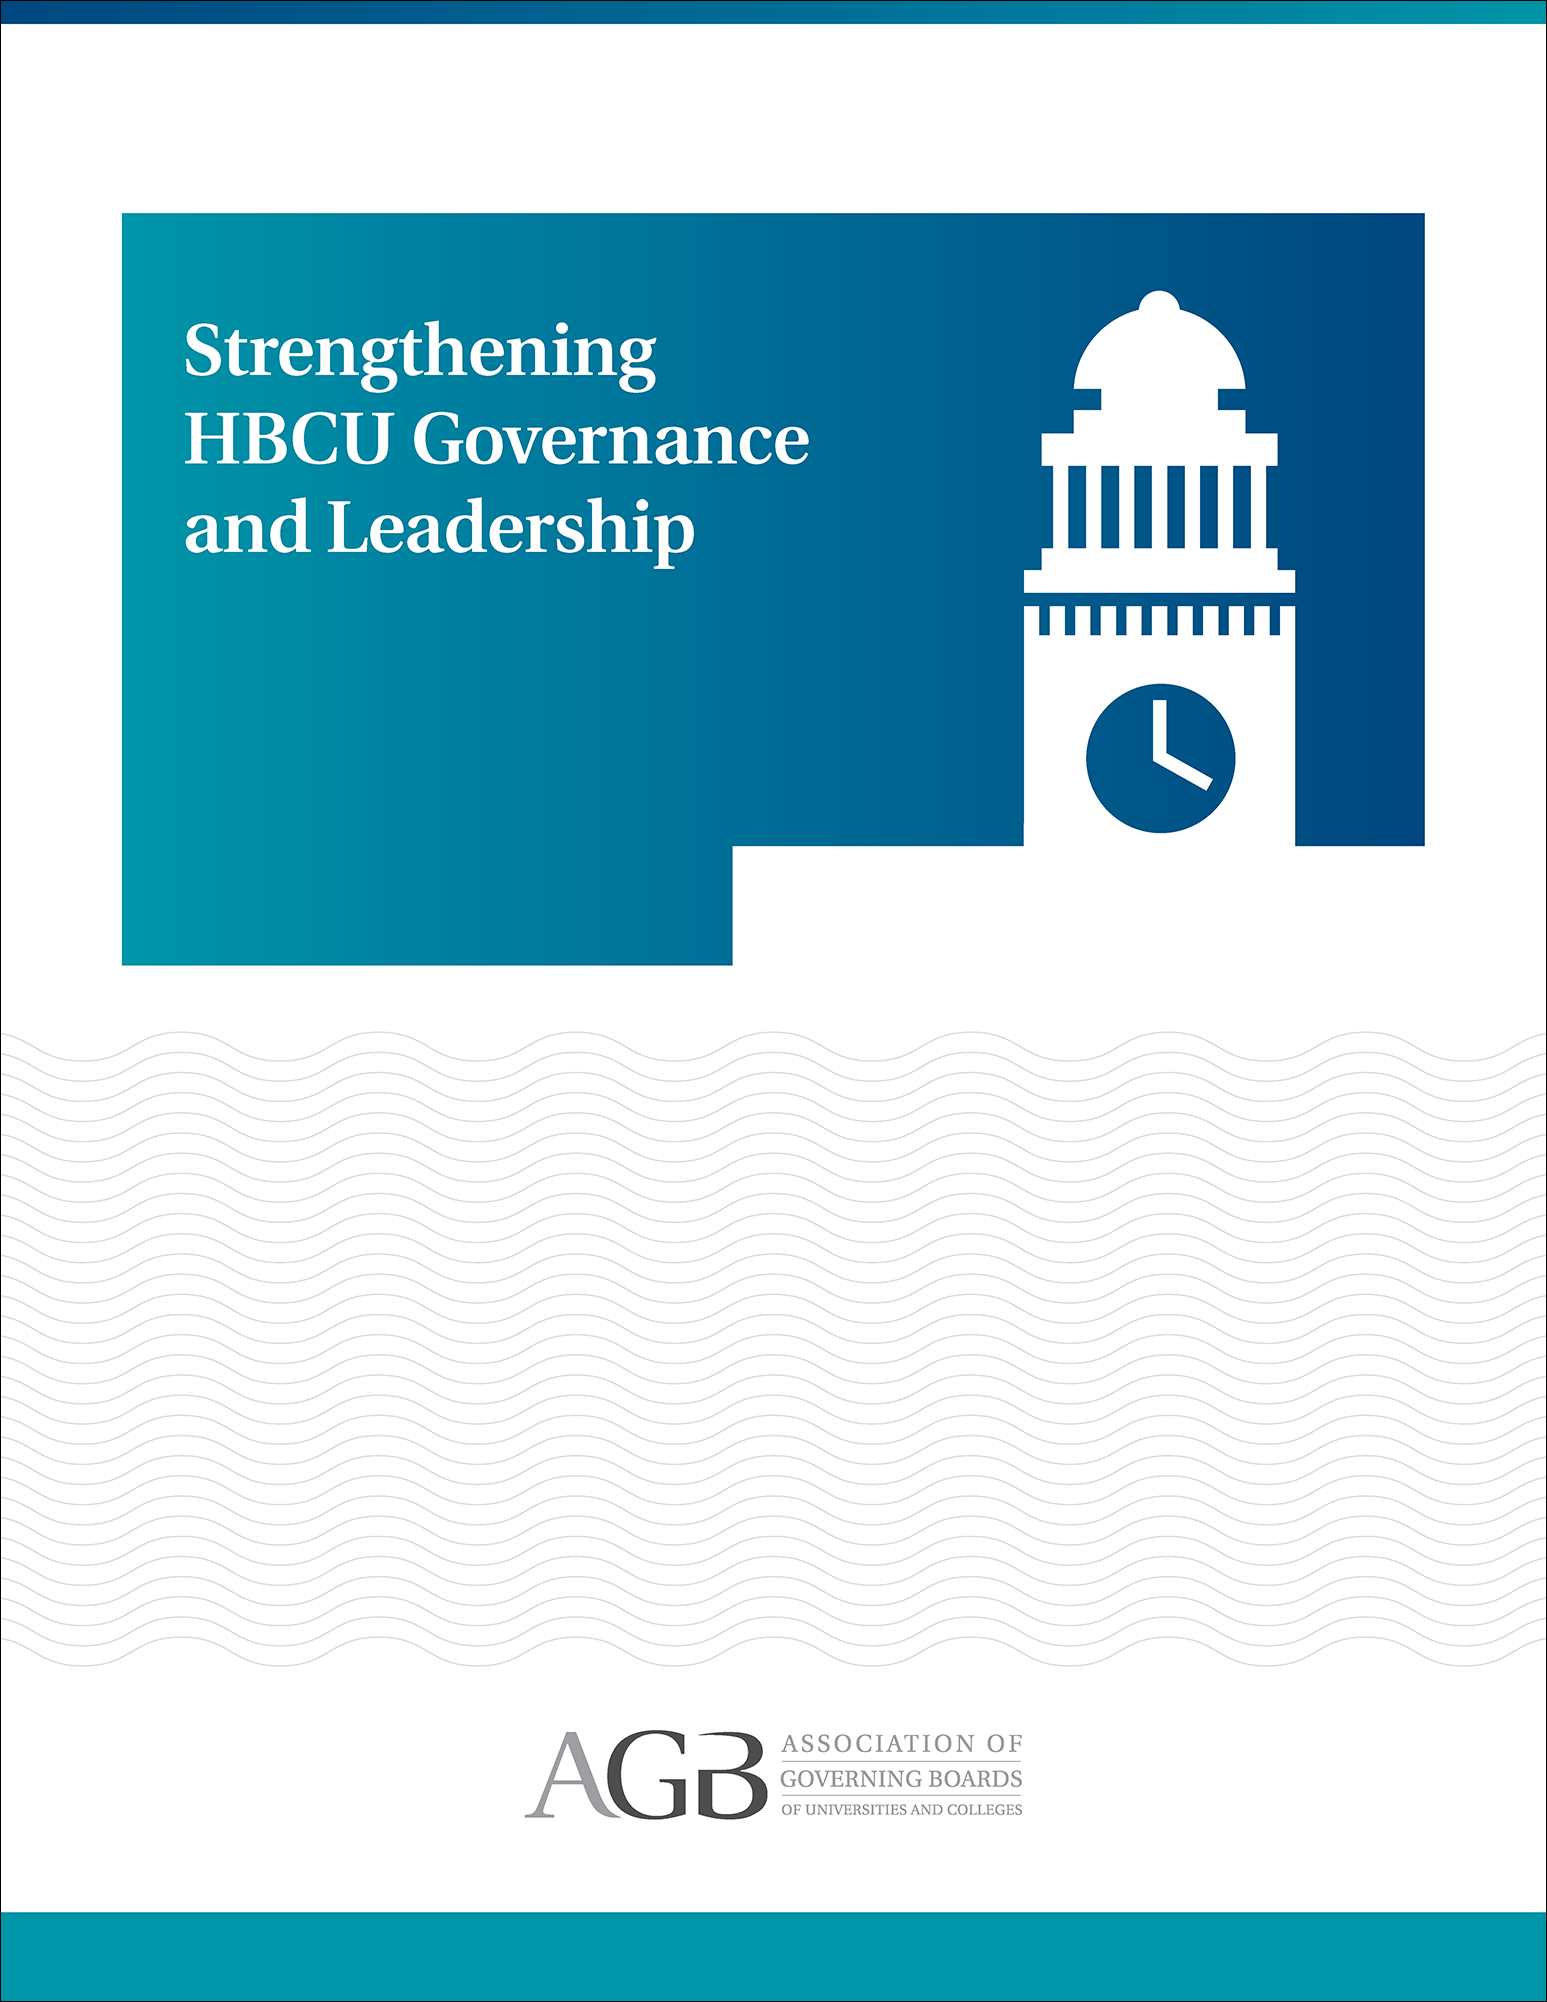 Strengthening HBCU Governance and Leadership